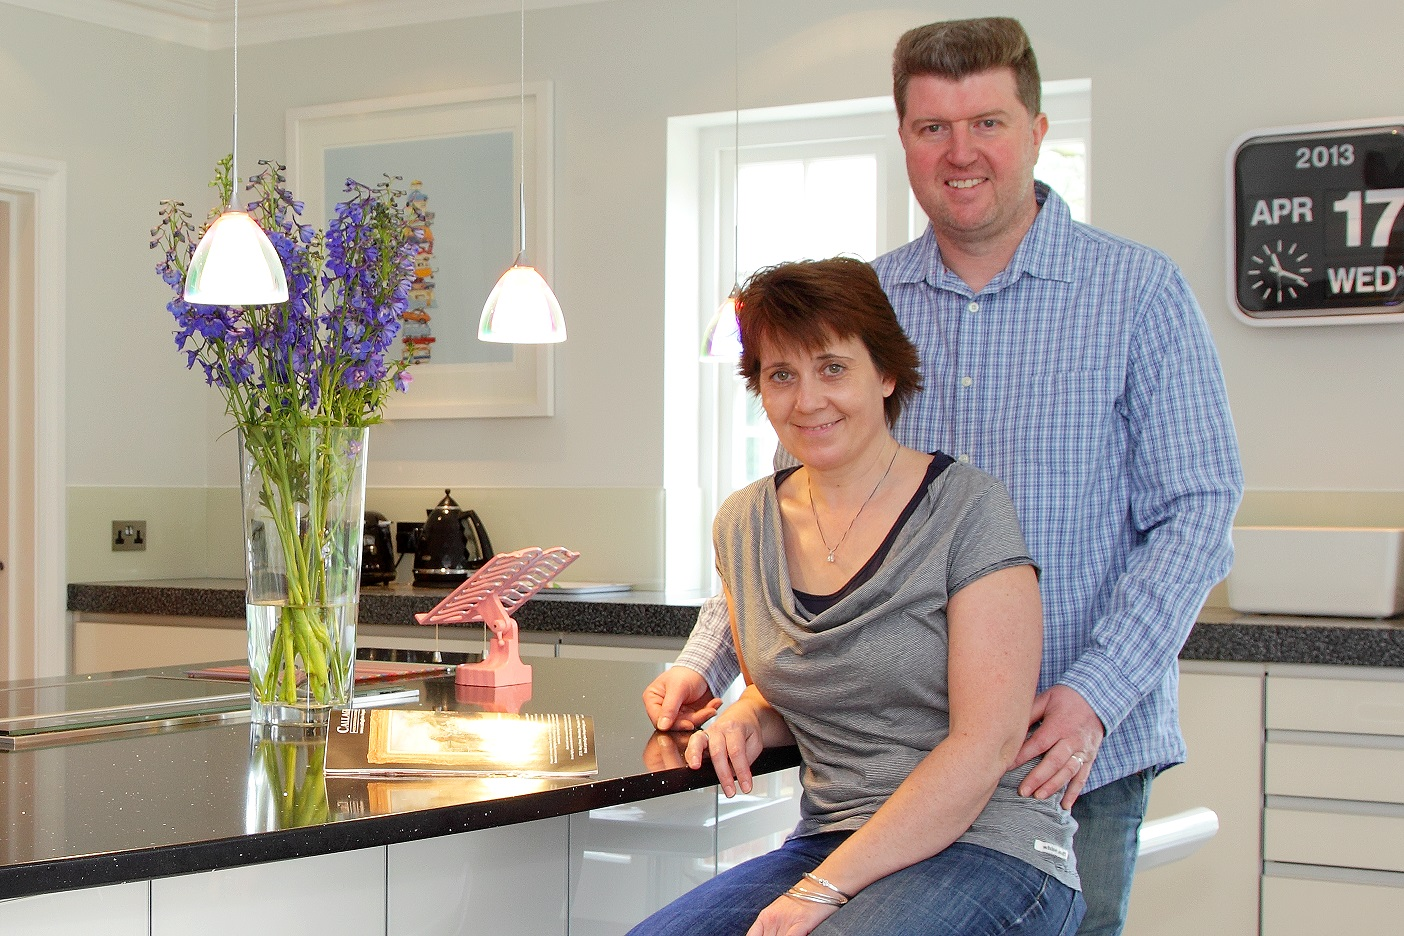 Kerry and Mark Reynolds of TIlford, near Farnham, Surrey are delighted with their ALNO kitchen. This is the fourth kitchen they have bought from Hampshire Kitchens over several properties and many years.